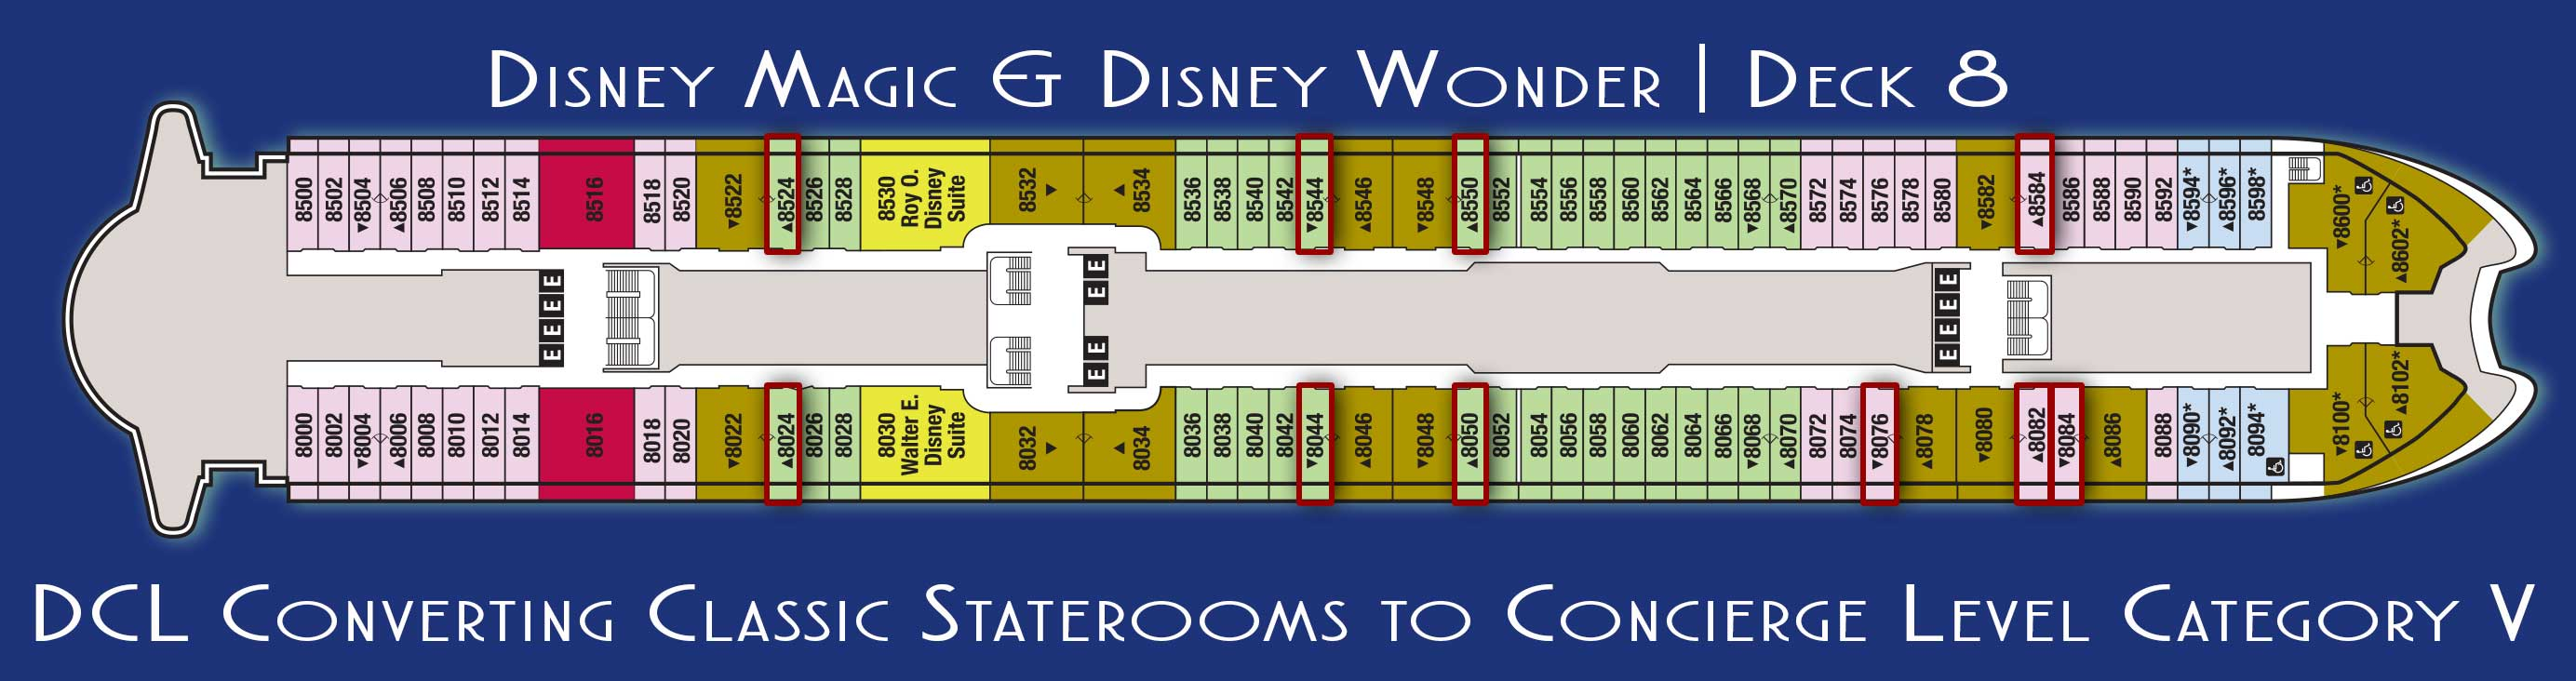 Disney magic and disney wonder staterooms converting to concierge magic wonder new deck 8 concierge staterooms 2017 baanklon Gallery